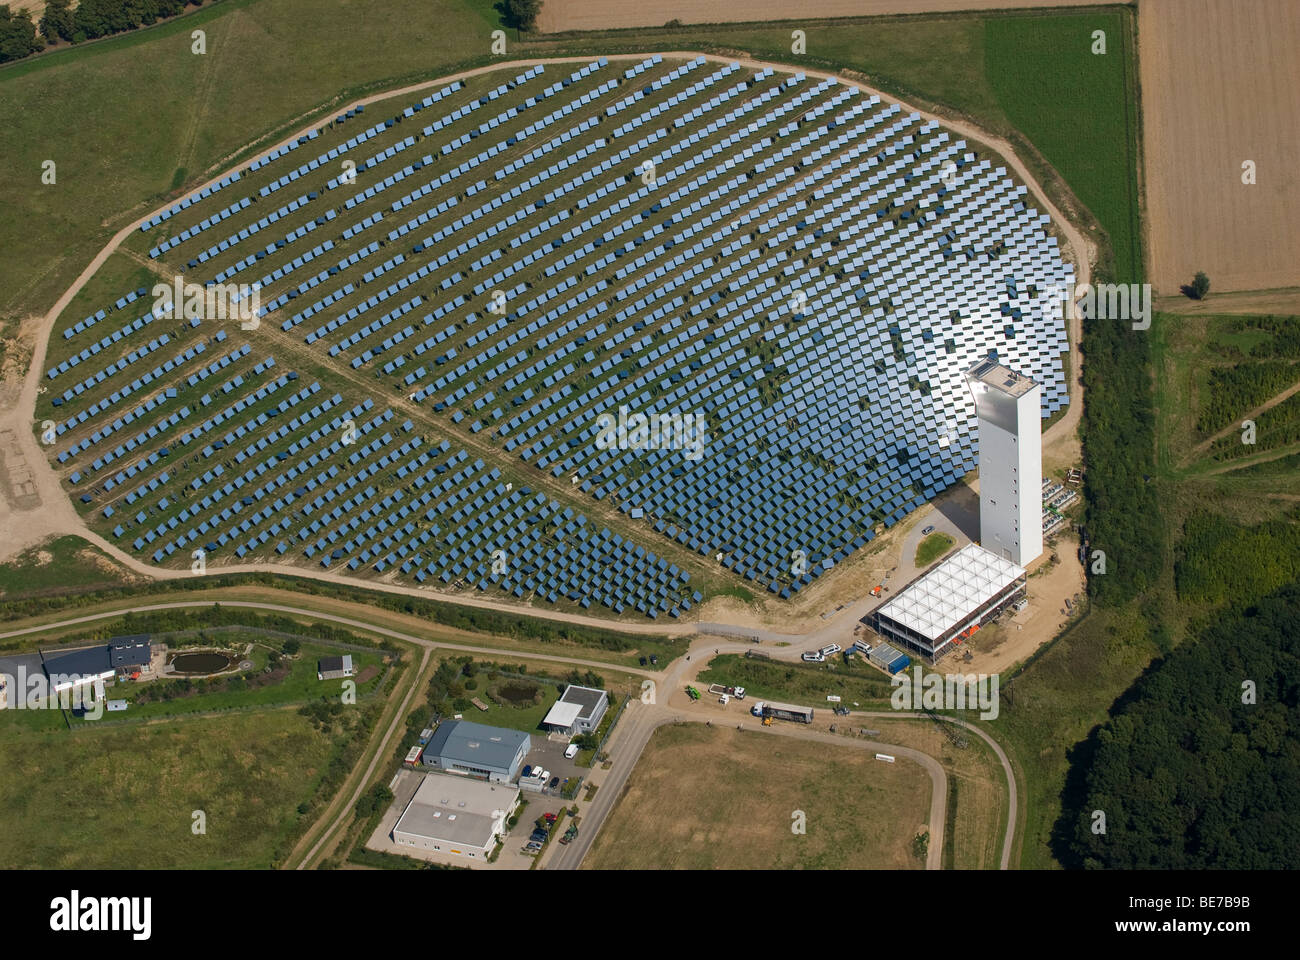 aerial photo of solar thermal energy pilot power plant - Stock Image